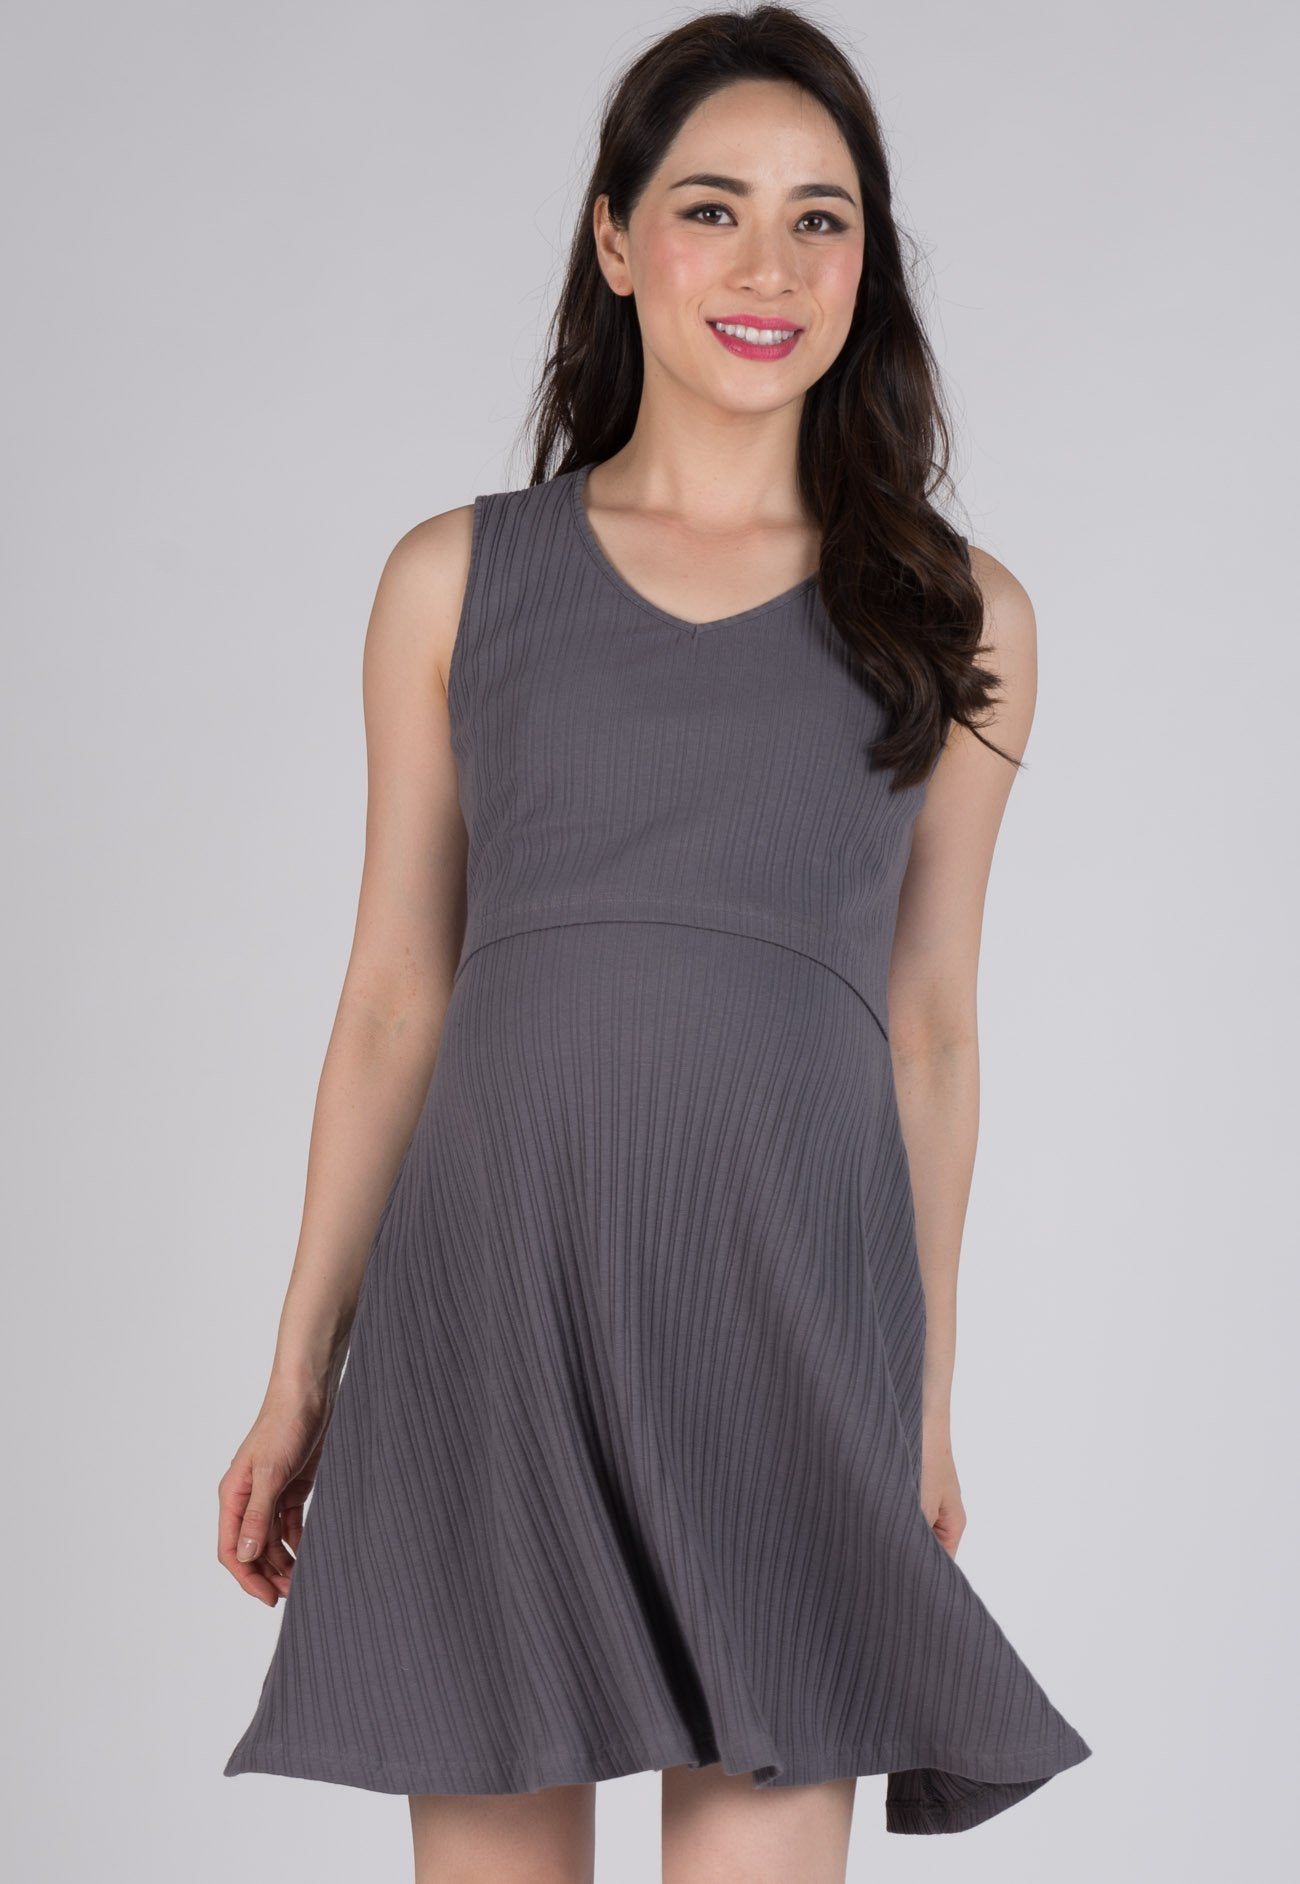 Mothercot Babydoll Knitted Nursing Dress  by JumpEatCry - Maternity and nursing wear